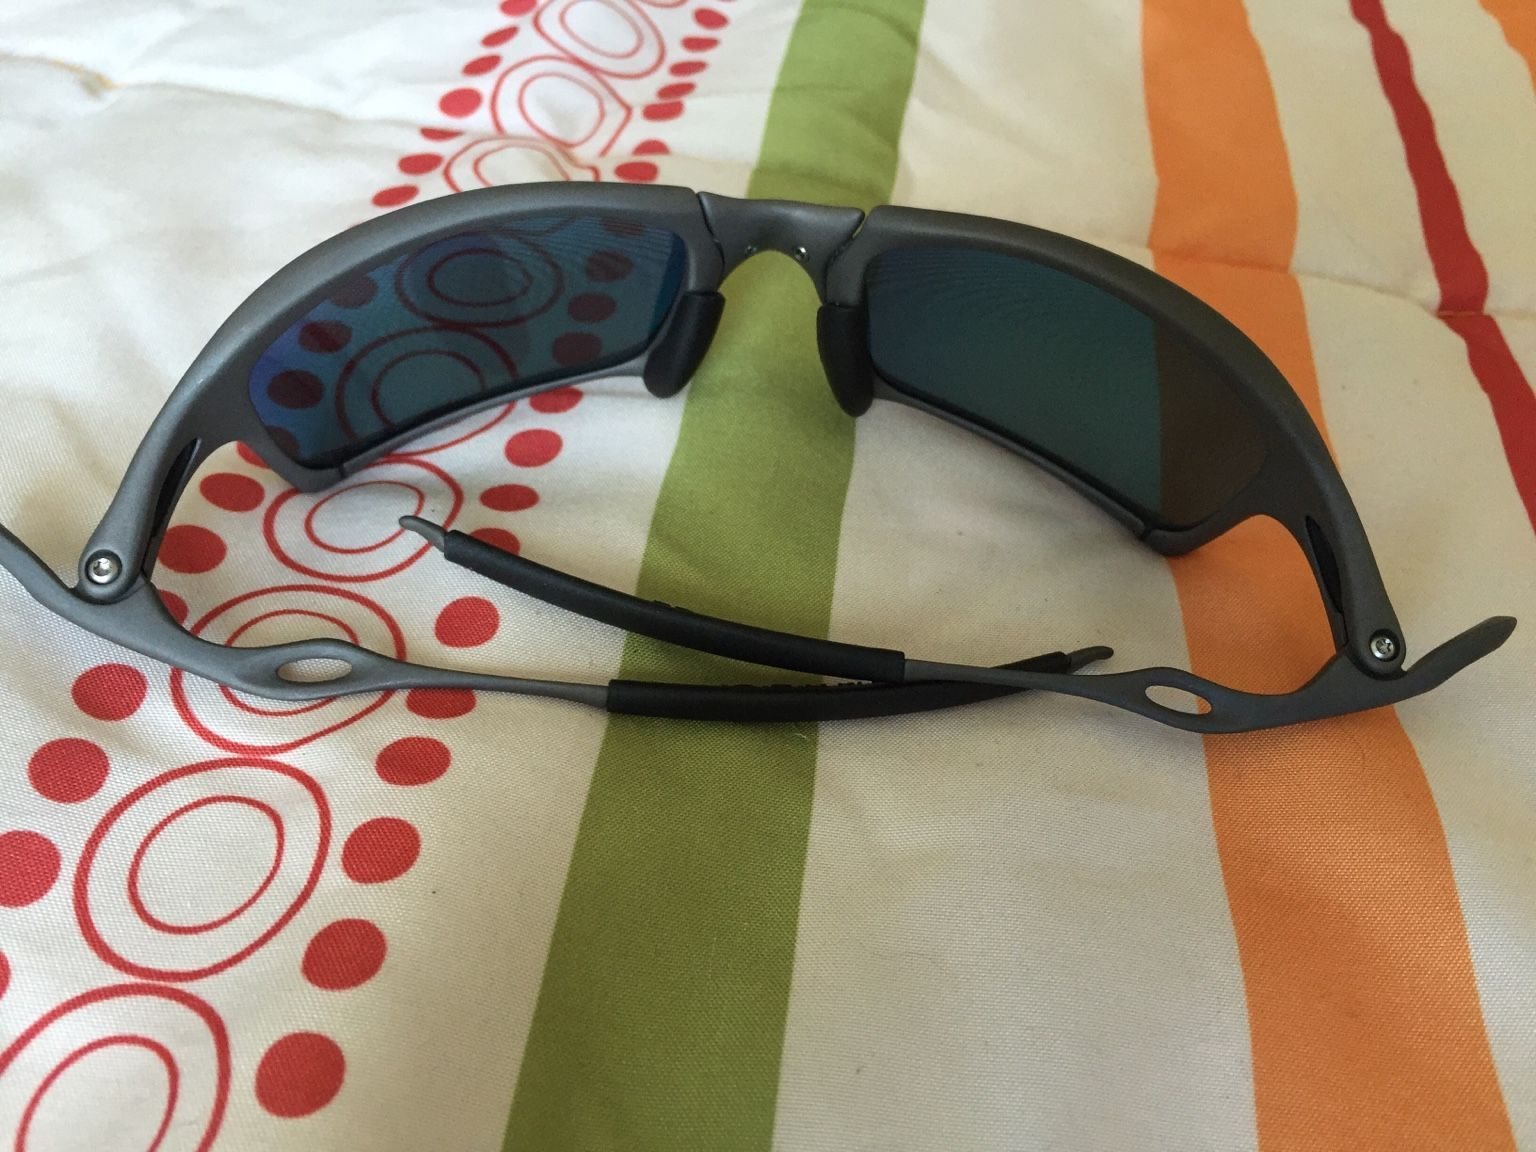 ***GONE*** Mint X-metal/Ruby XS with extra lenses - ec64a43ade2f387498161b77f6249279.jpg